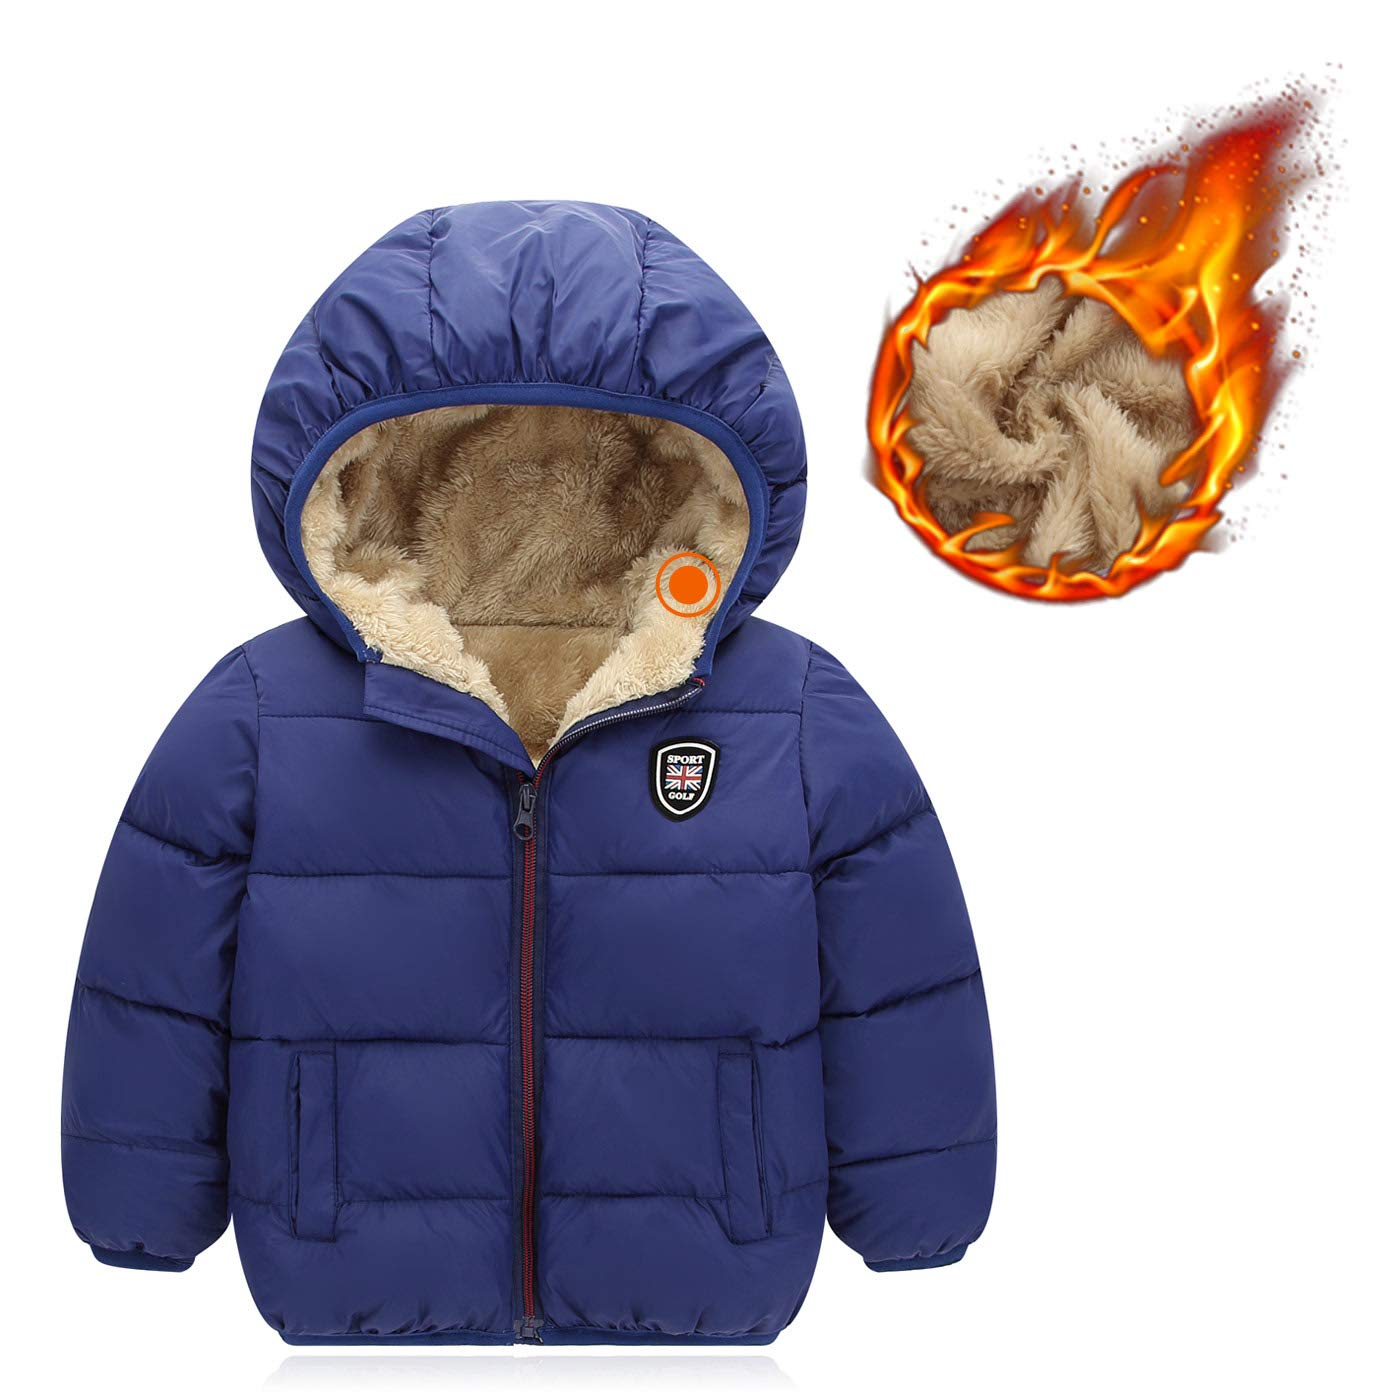 1f197b387 Happy Cherry Boys Girls Hooded Down Jacket Winter Warm Fleece Coat  Windproof Puffer 2T-7T: Amazon.ca: Clothing & Accessories